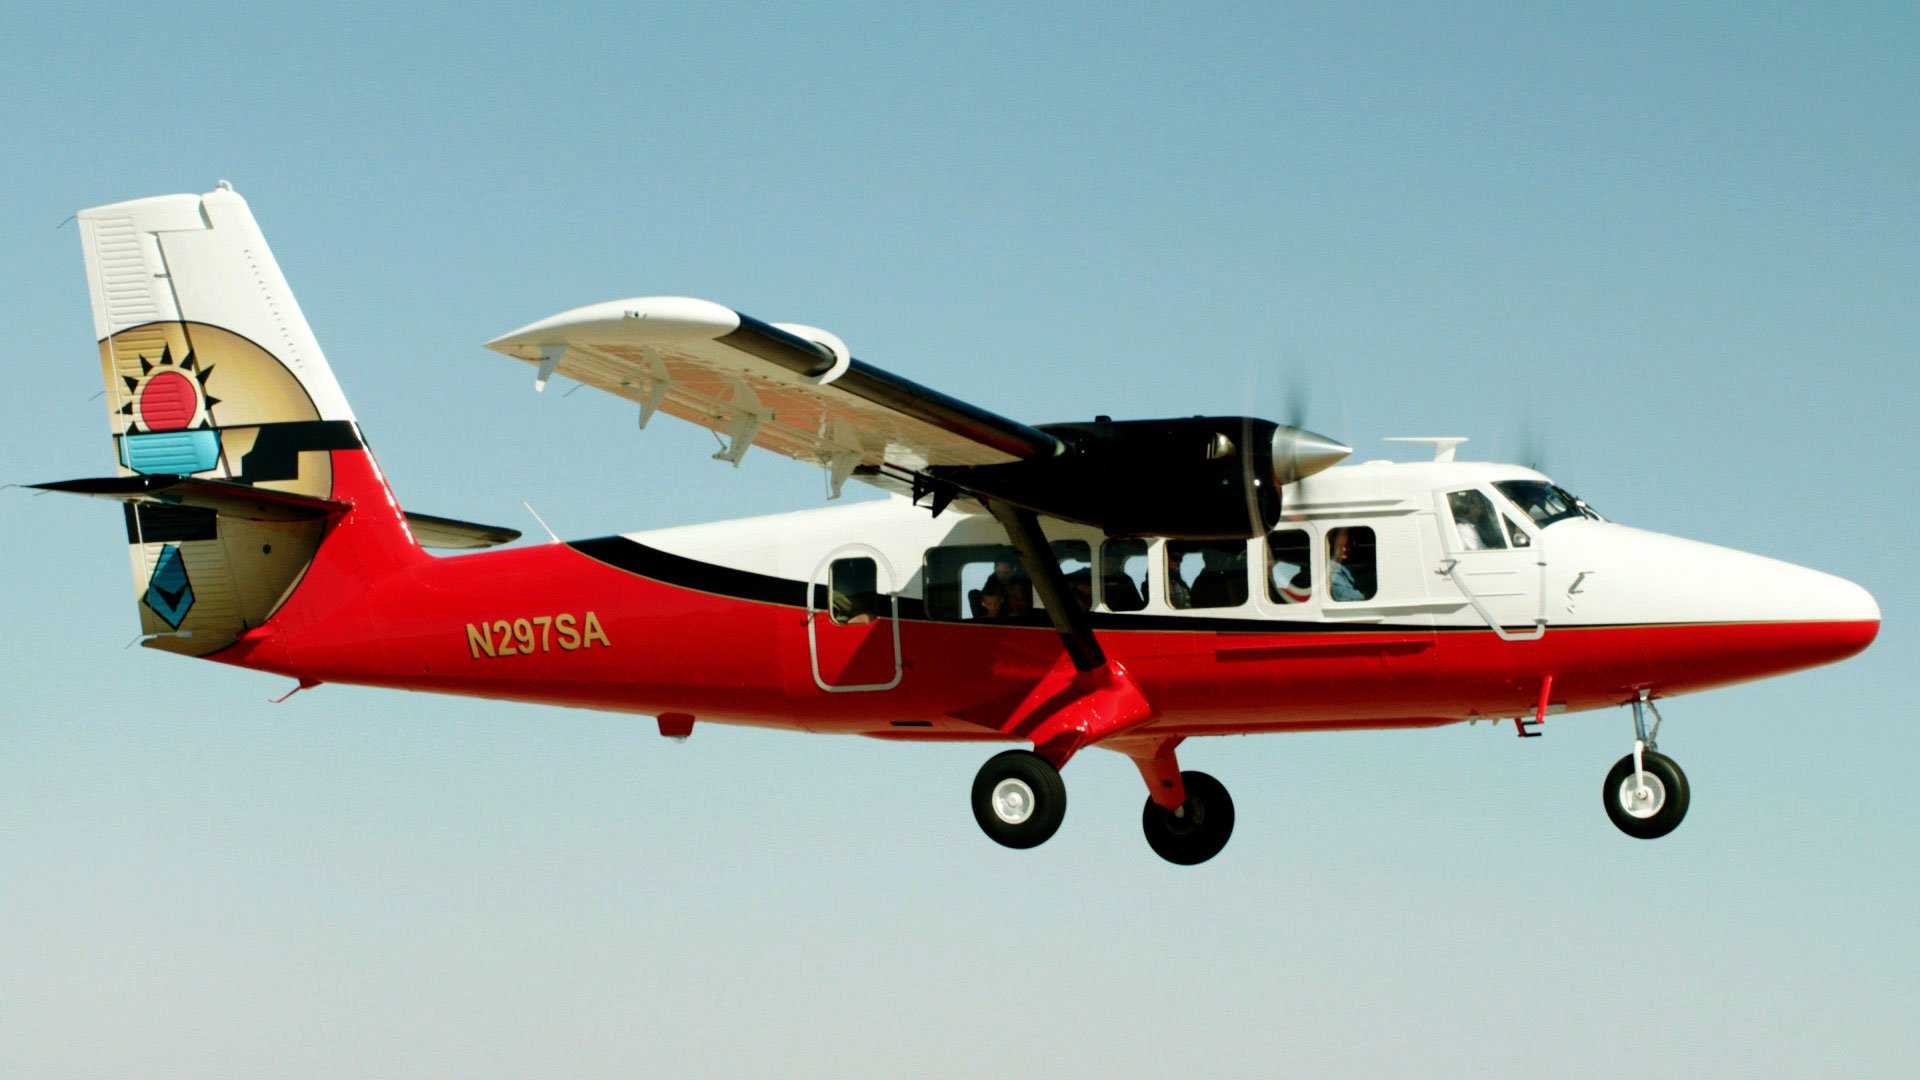 DeHavilland Vistaliner Twin Otter airplane in flight